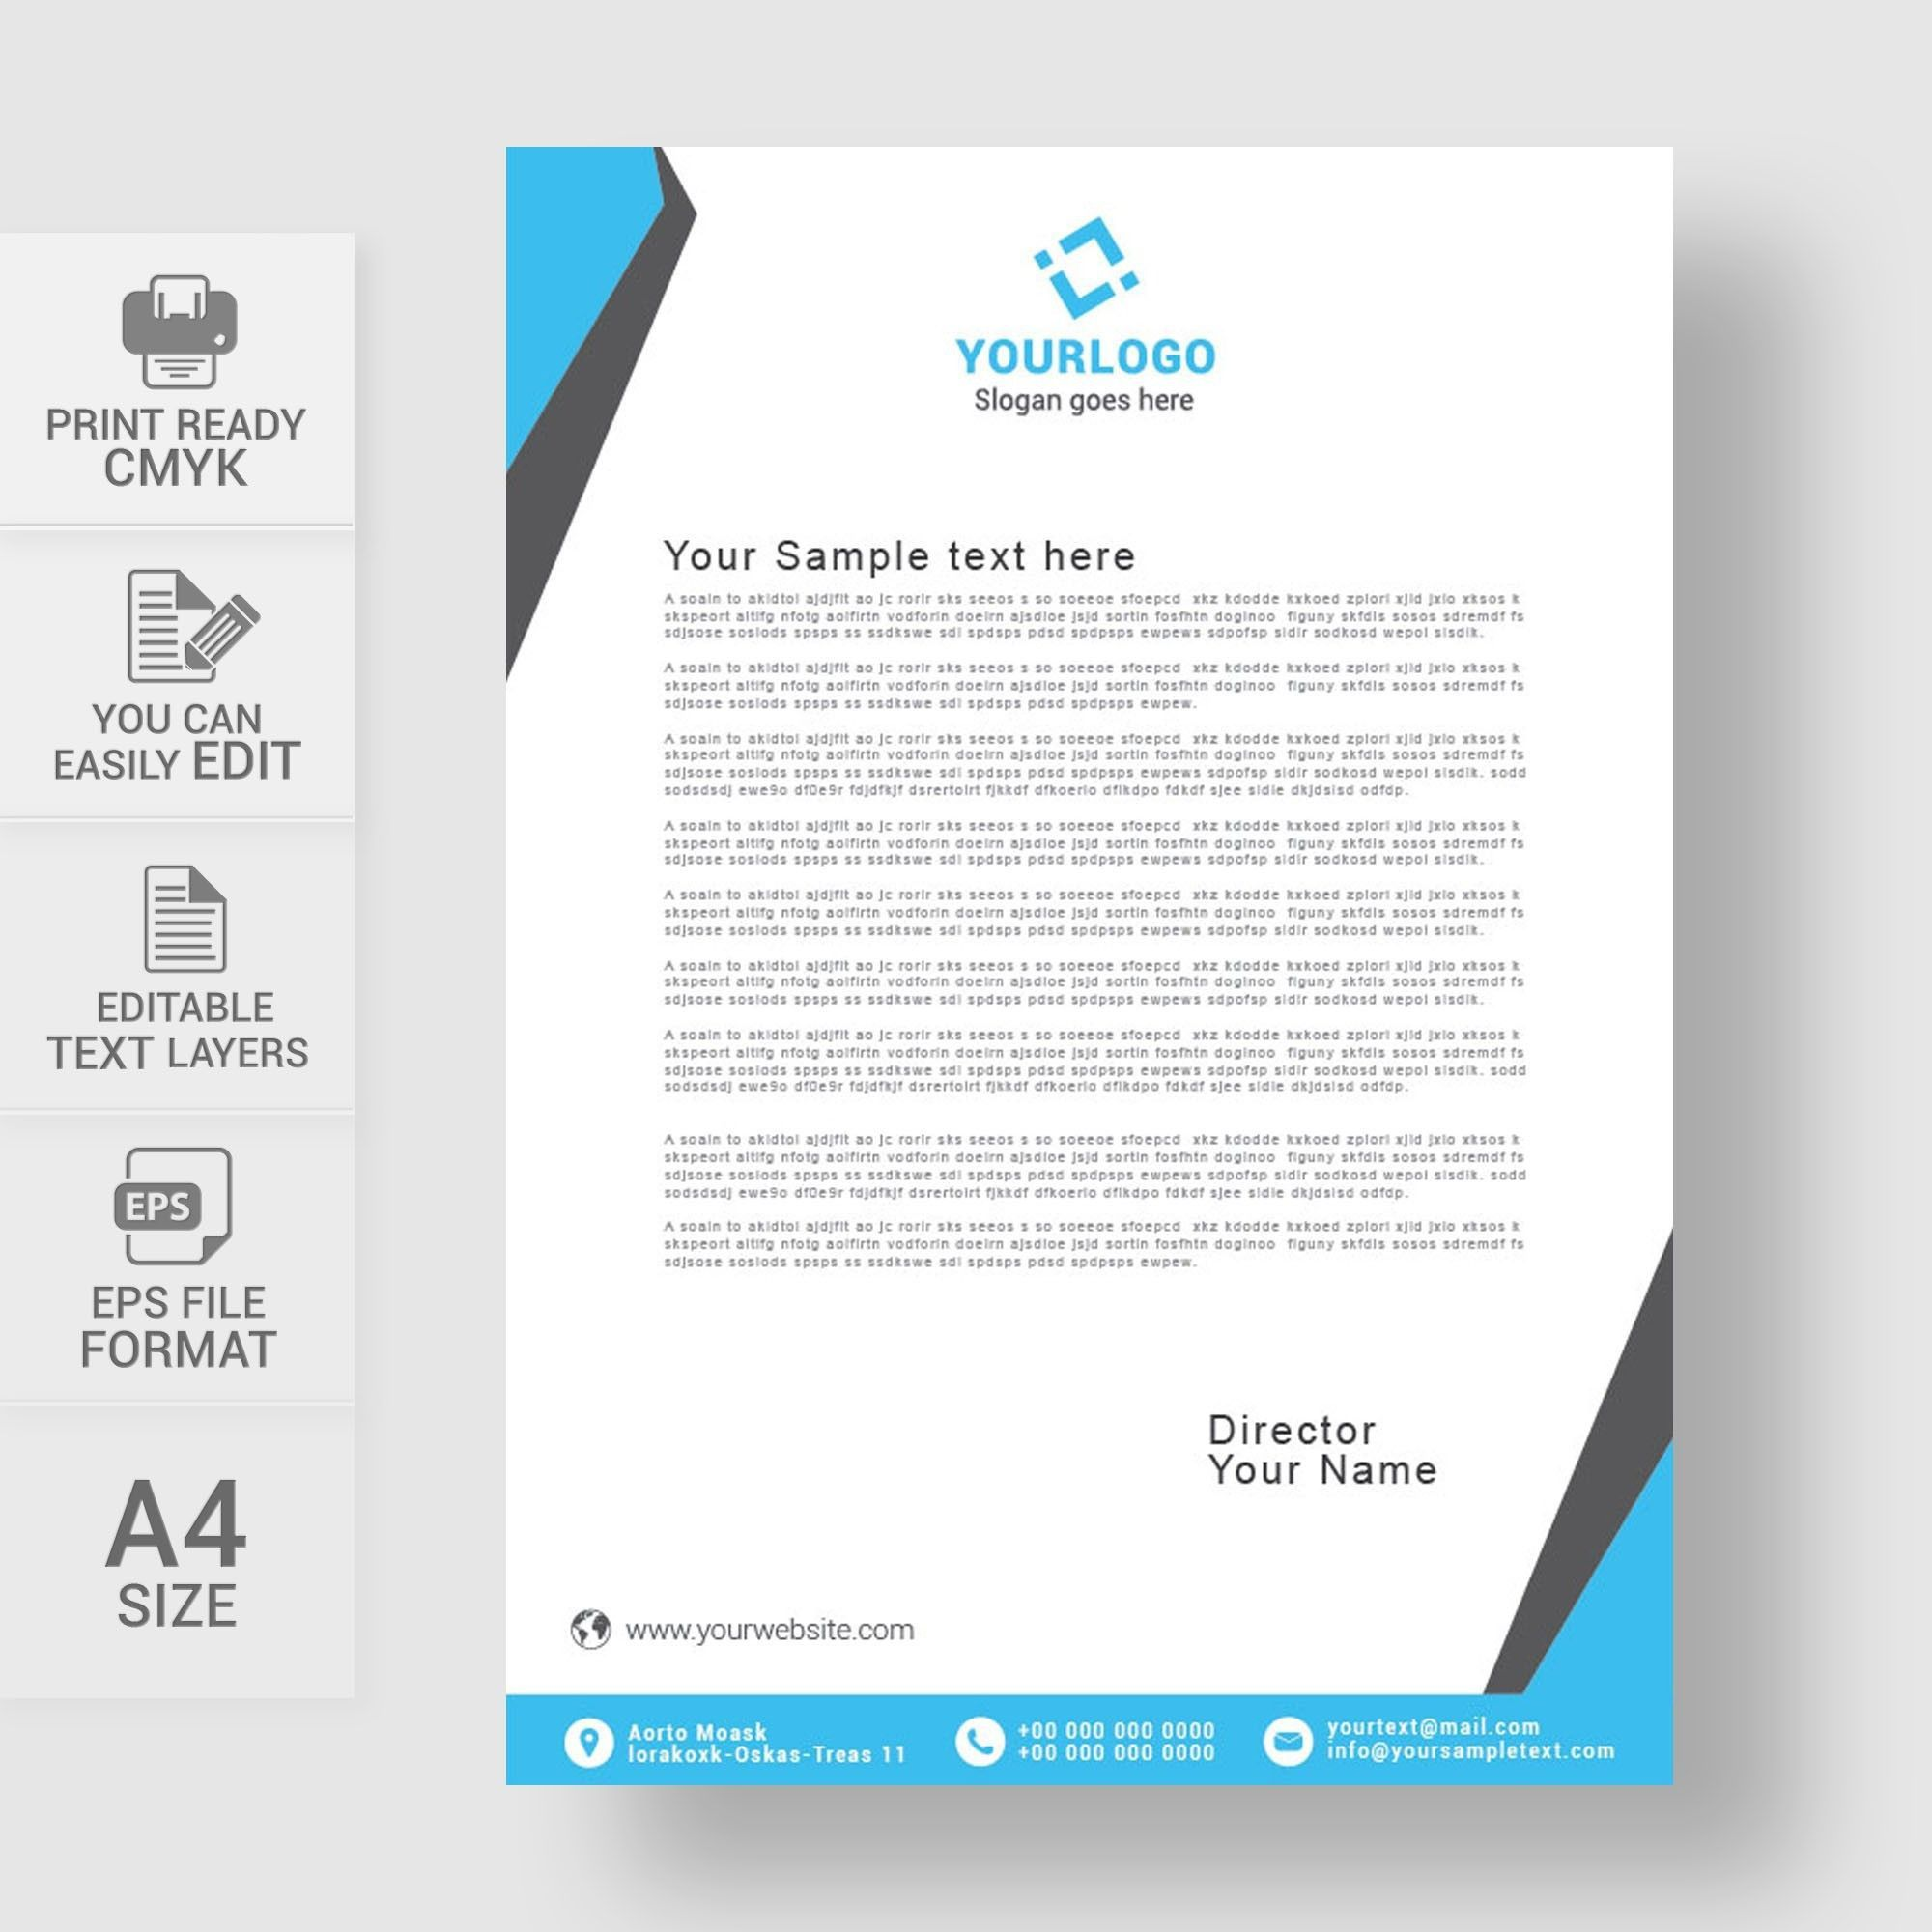 002 Unbelievable Letterhead Sample Free Download High Resolution  Construction Company TemplateFull